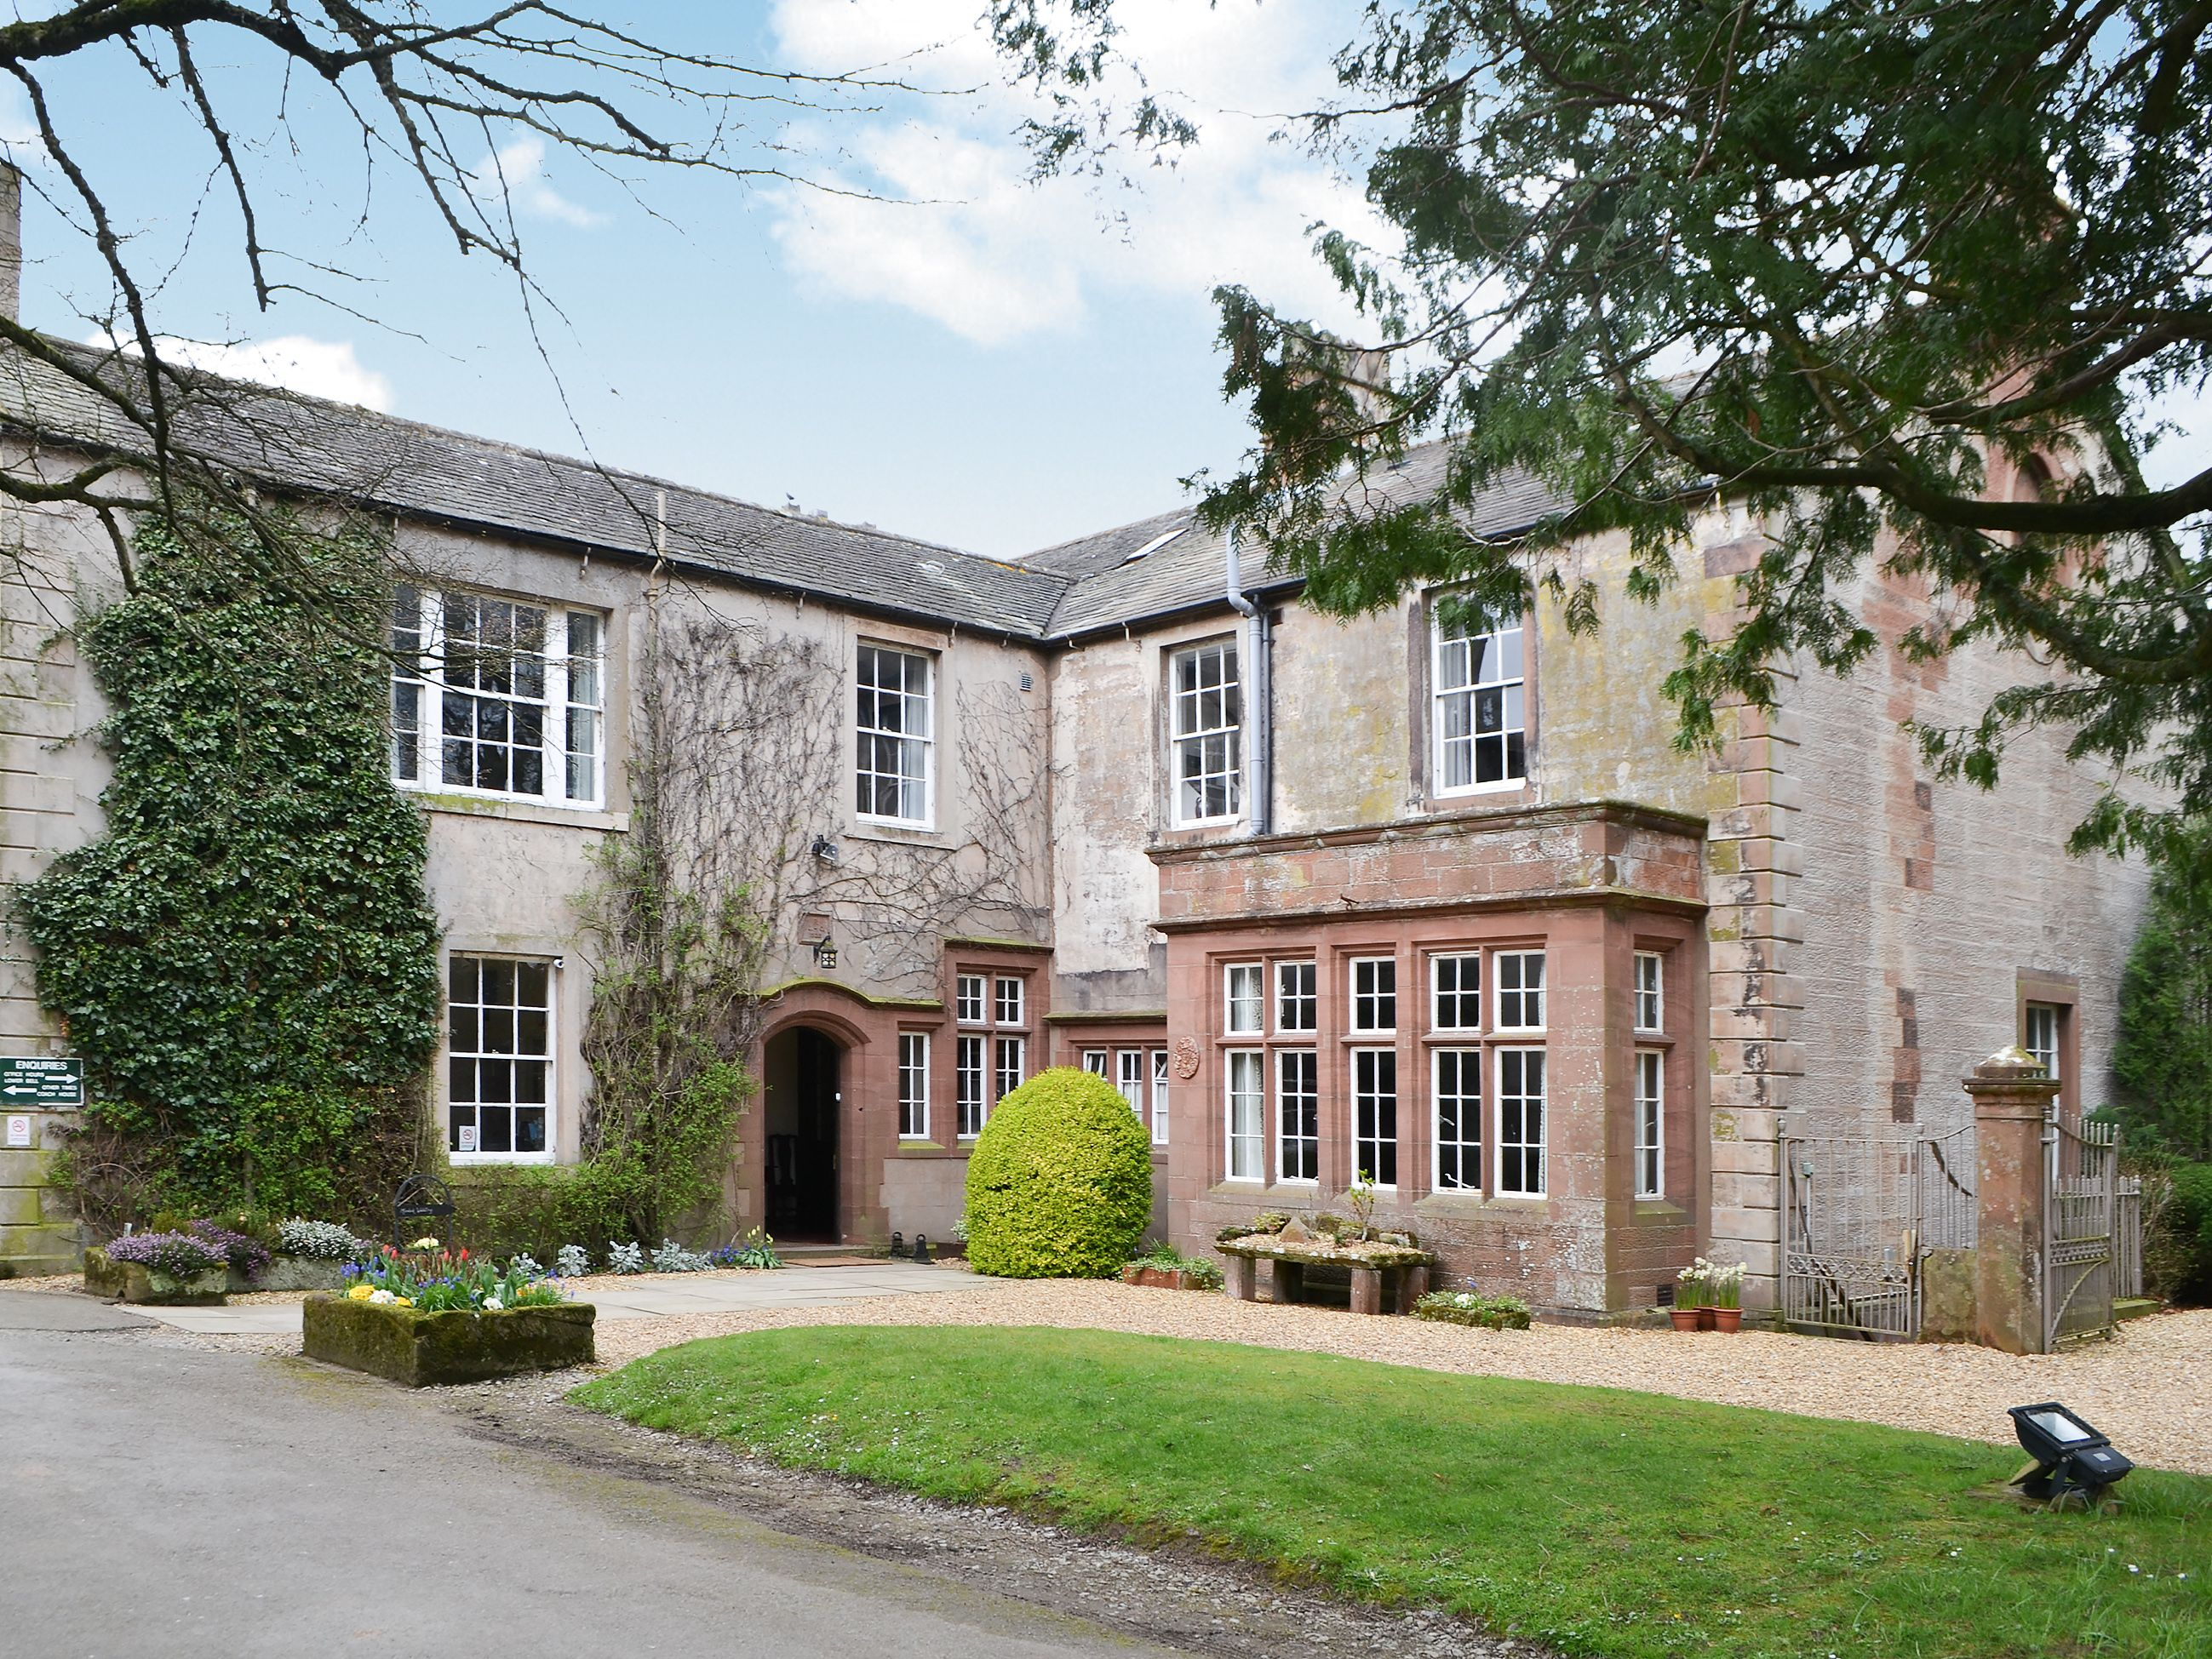 A  Grade II listed, detached country mansion, just perfect for celebrating that special occasion with family and friends.